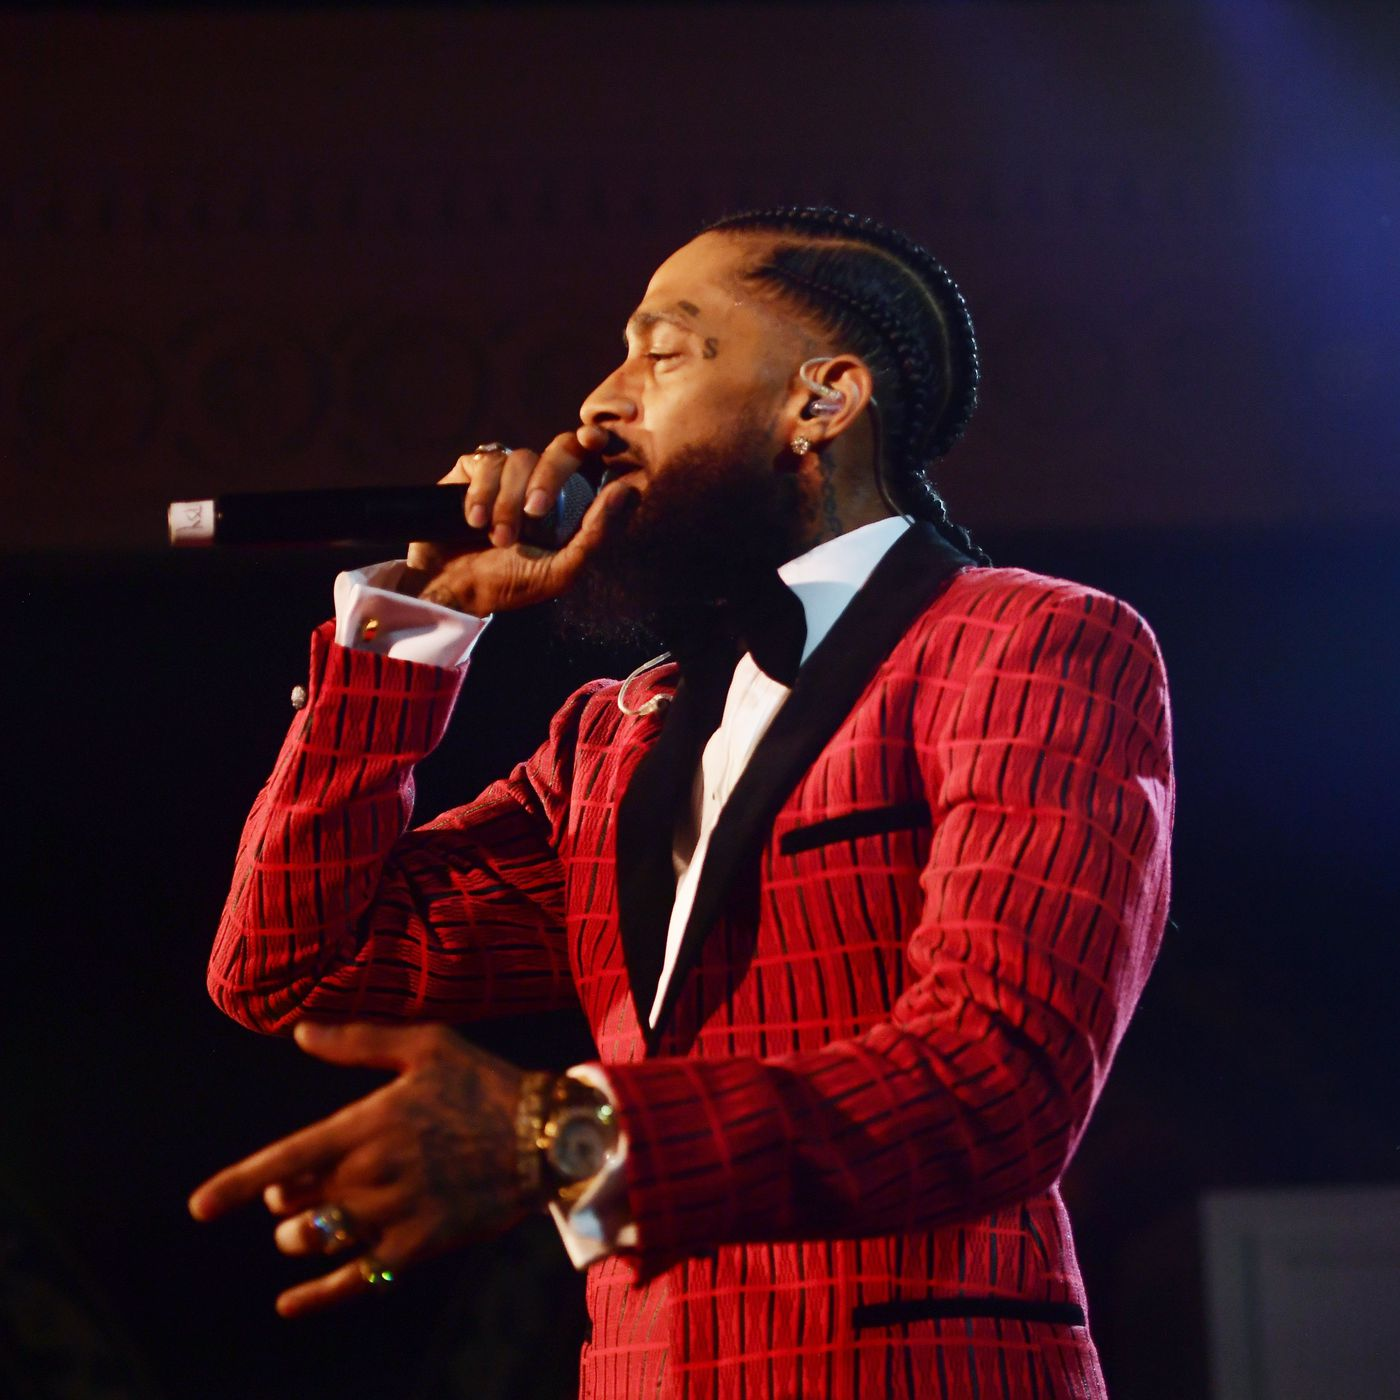 Rapper Nipsey Hussle His Life Journey From Crips To